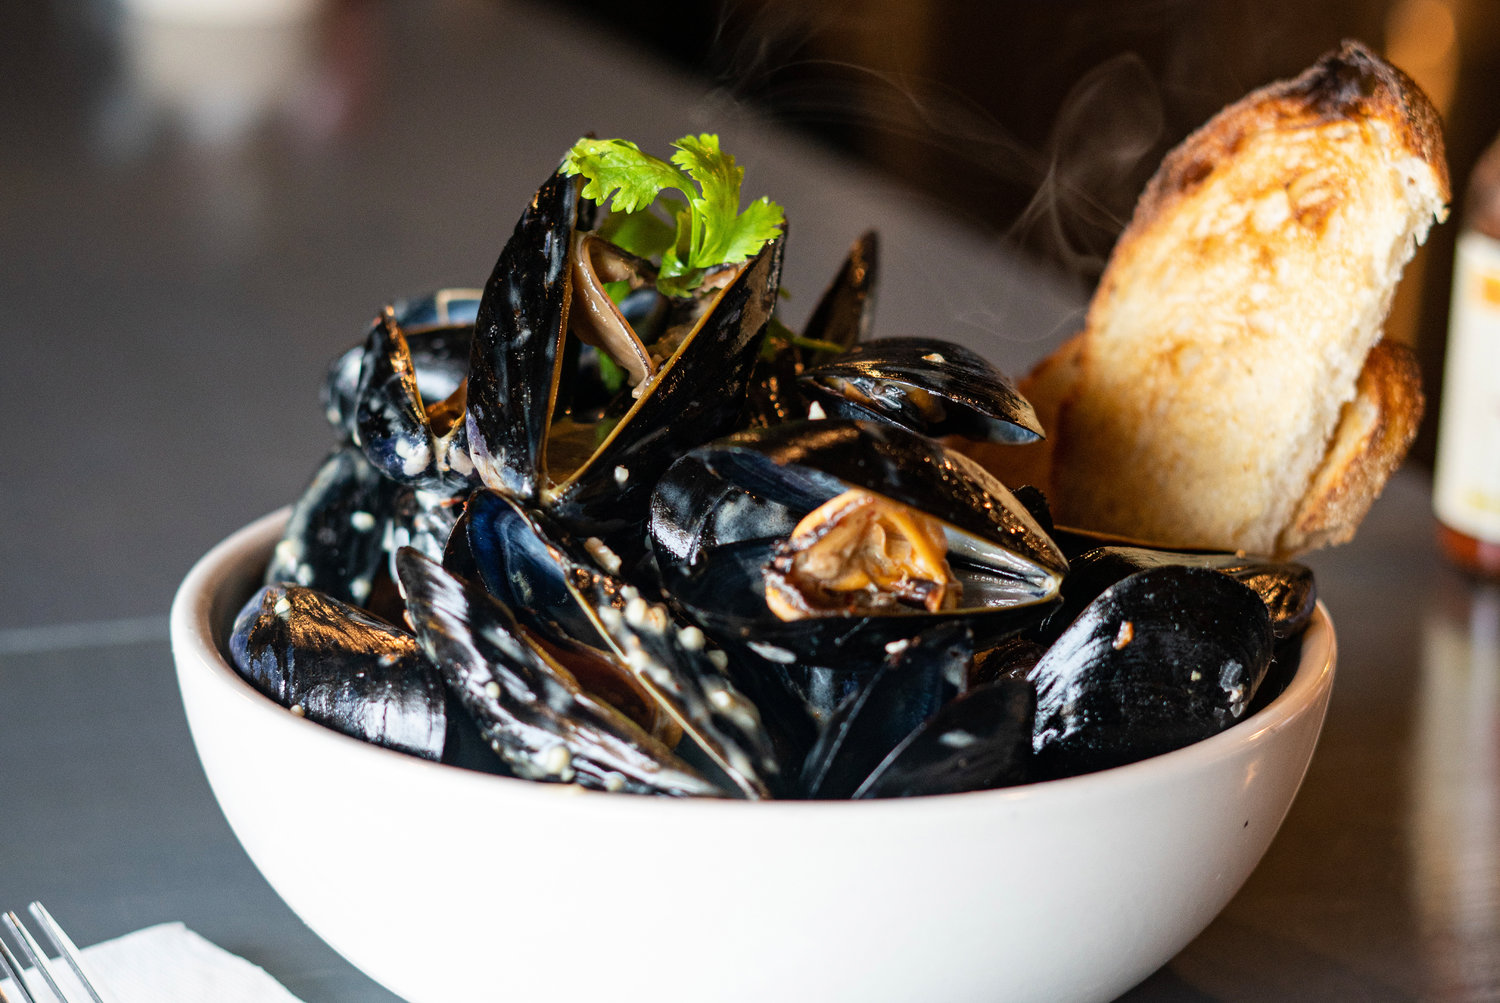 Local mussels served in a bath of Thai chili coconut milk at The Thirsty Gull